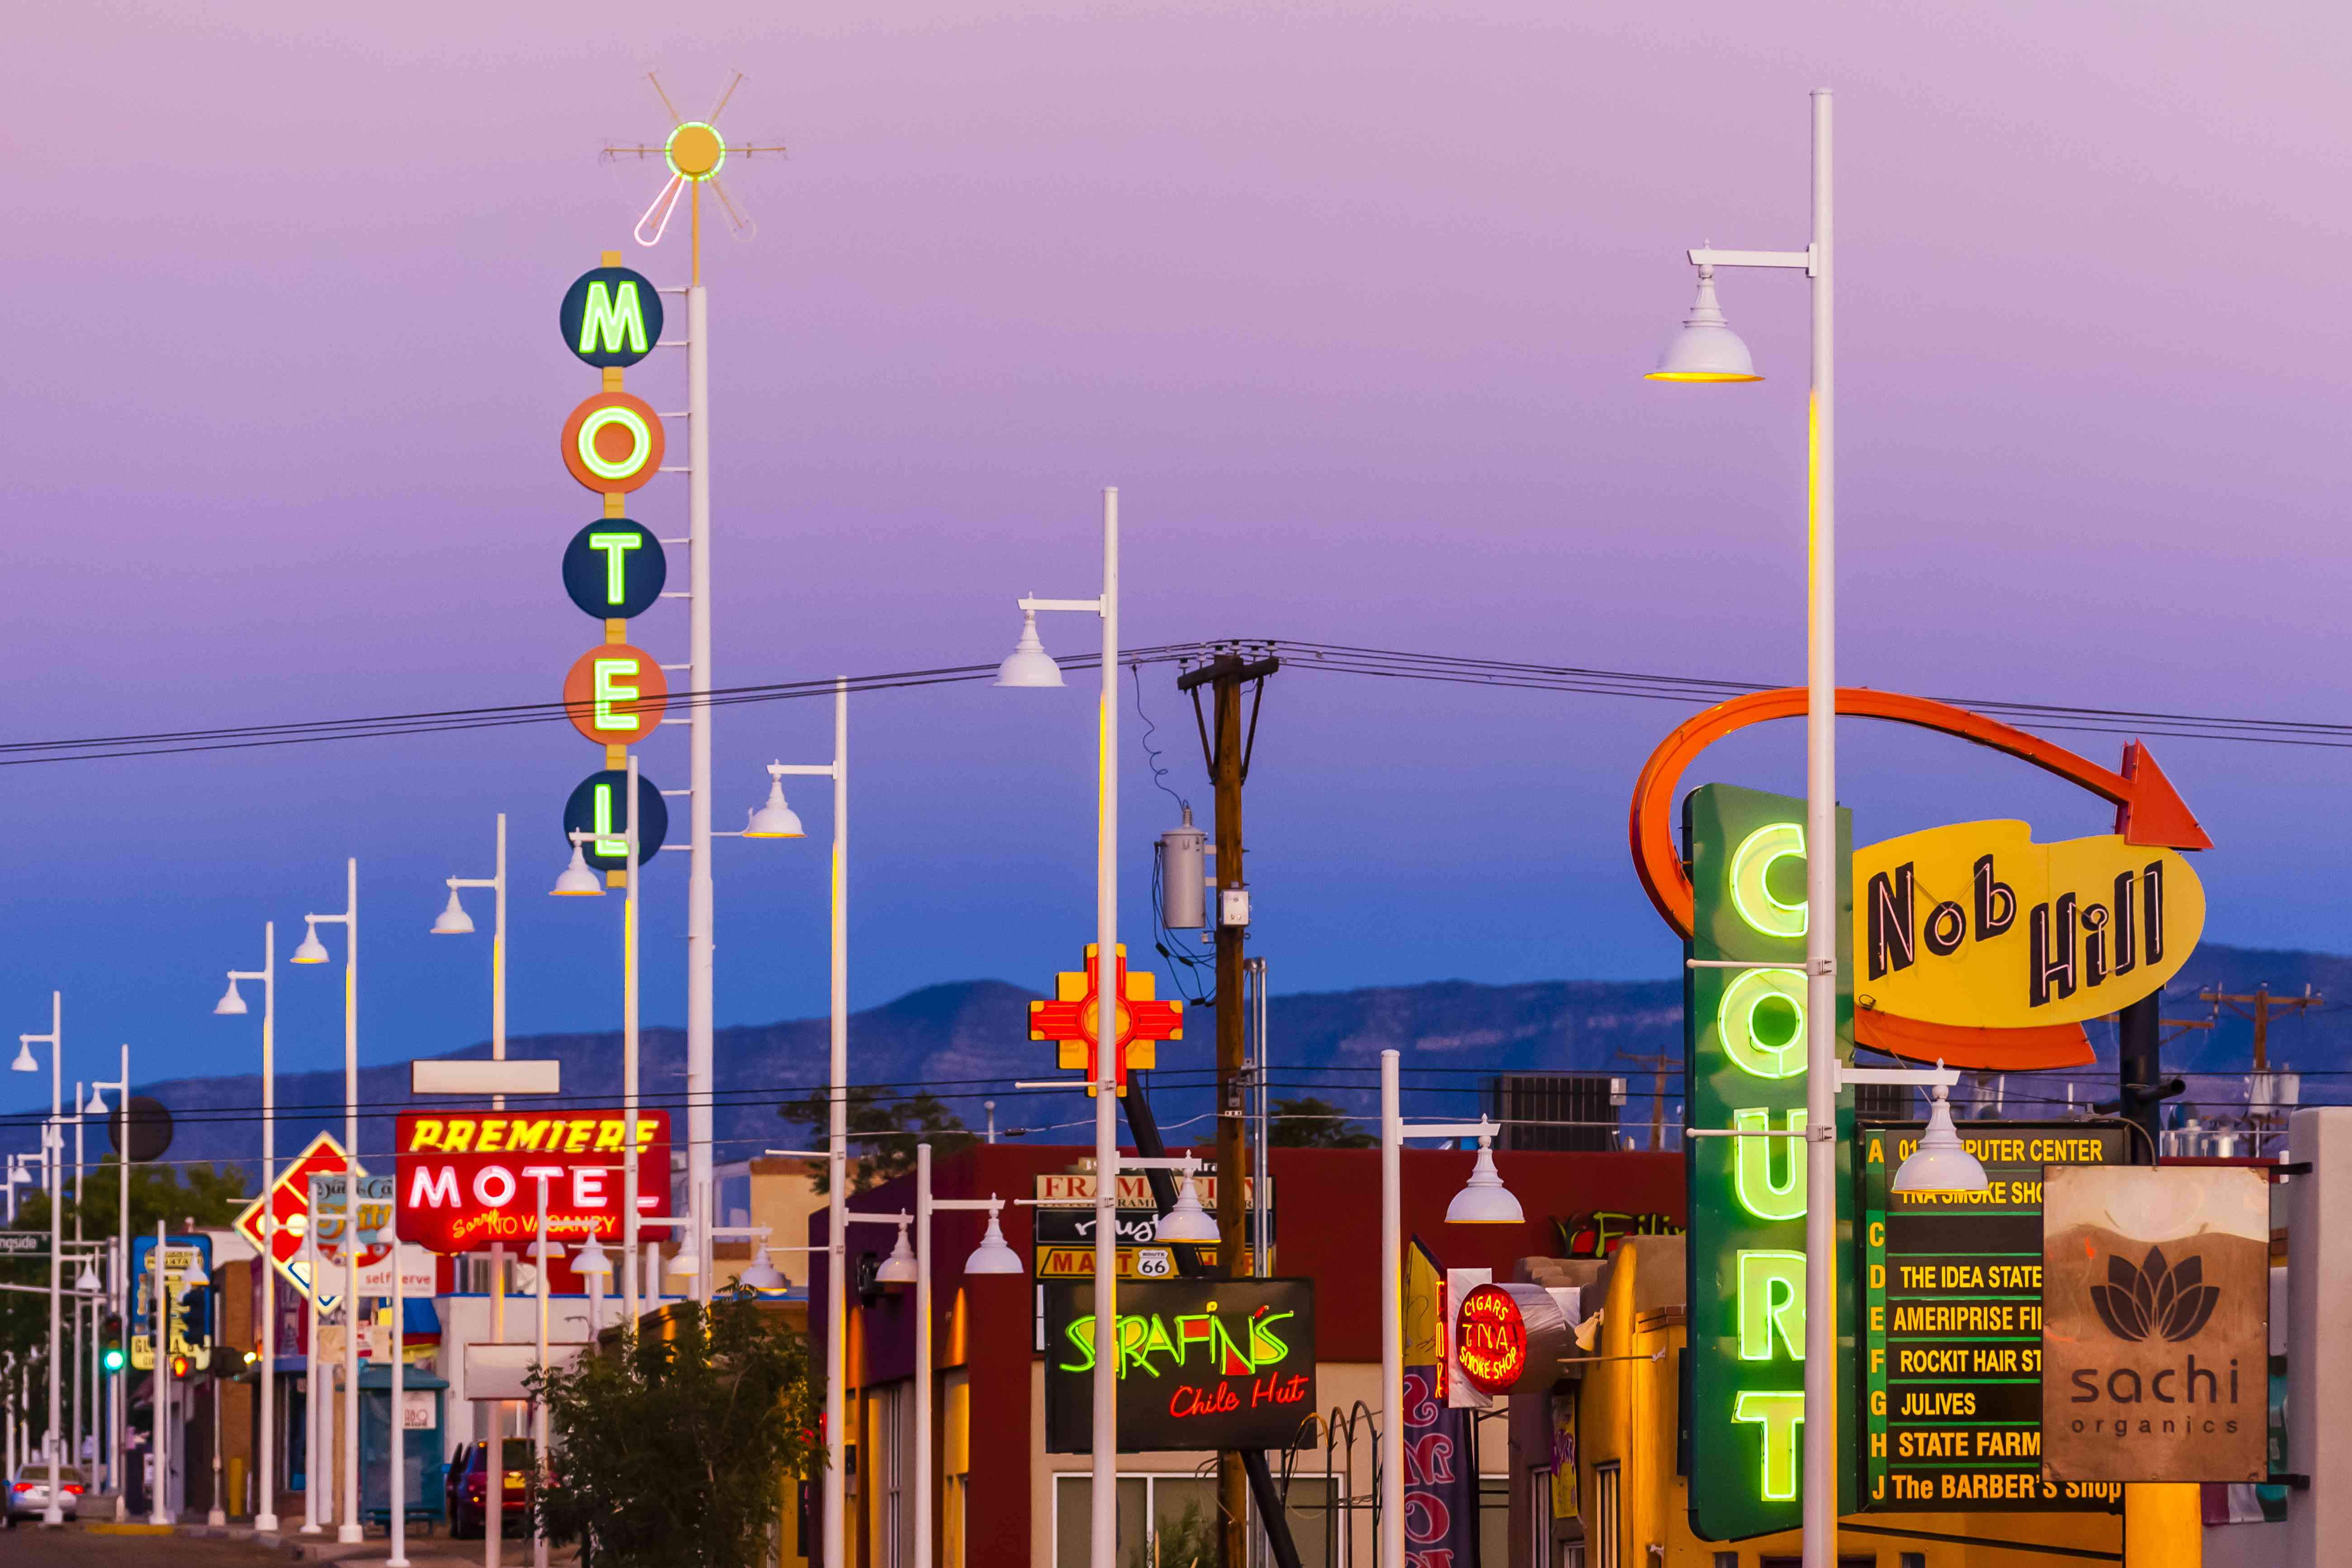 Central Avenue (Historic Route 66) in the Nob Hill section of Albuquerque